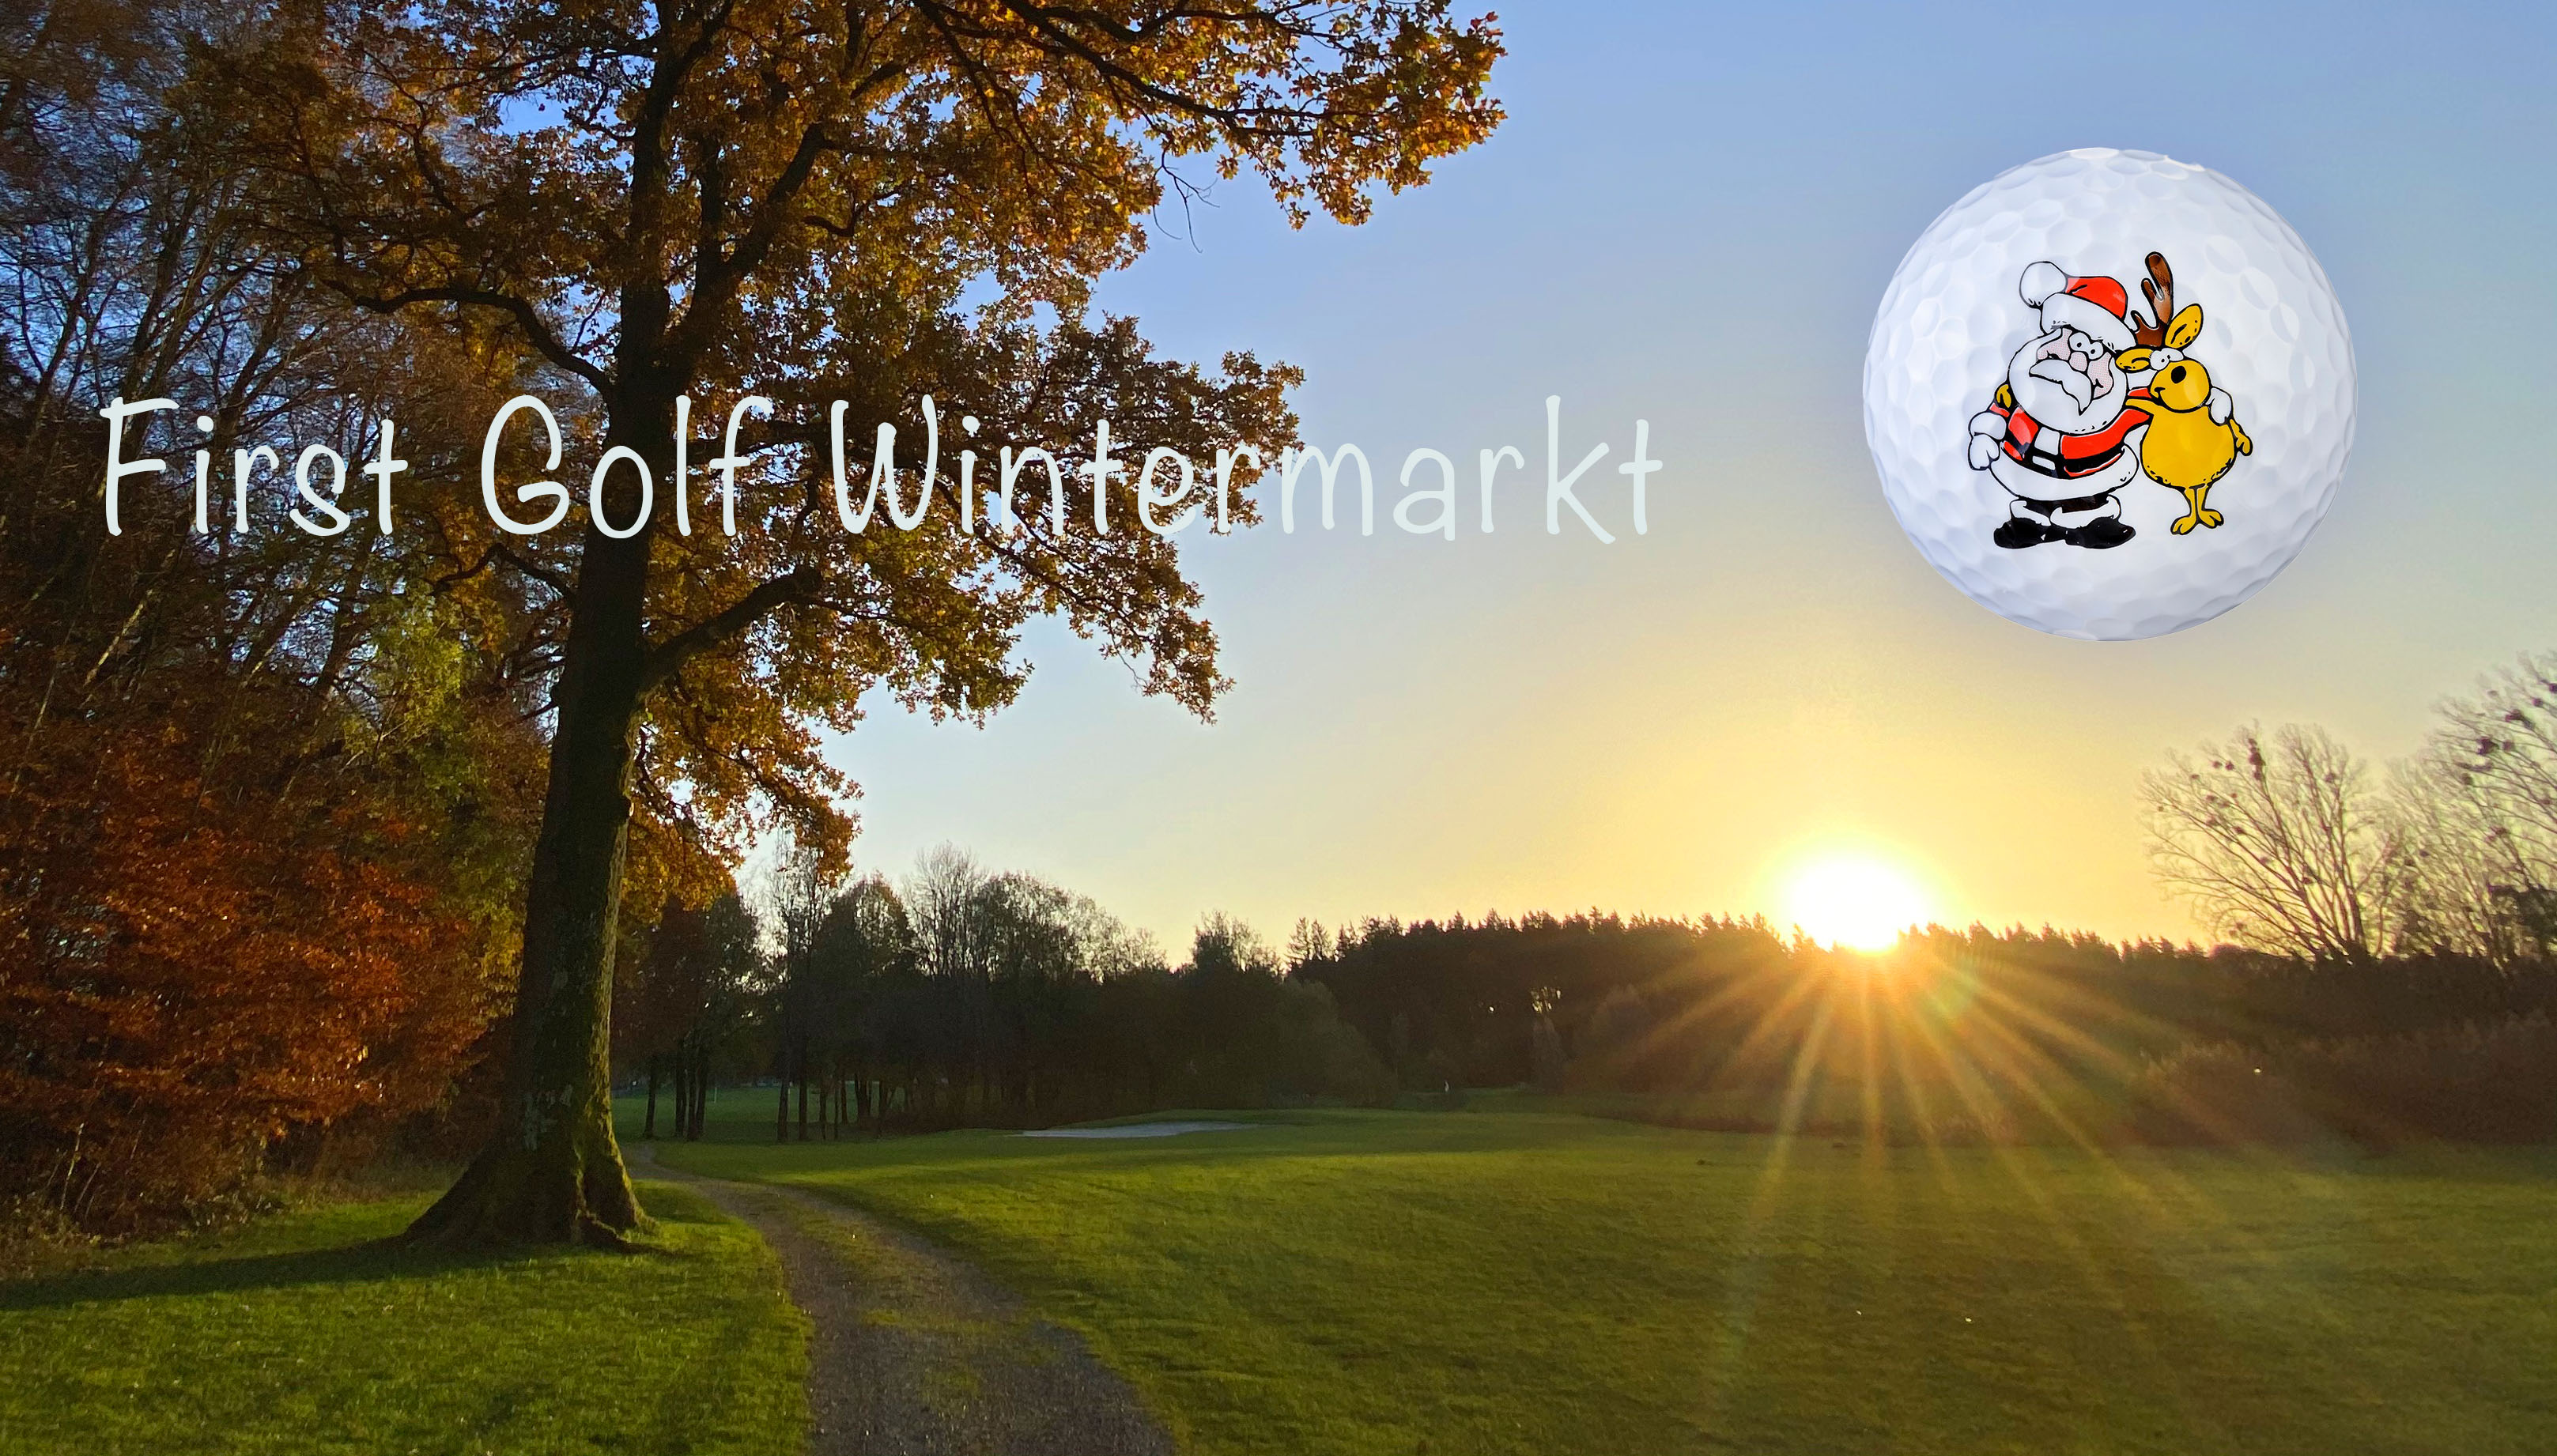 First Golf Wintermarkt